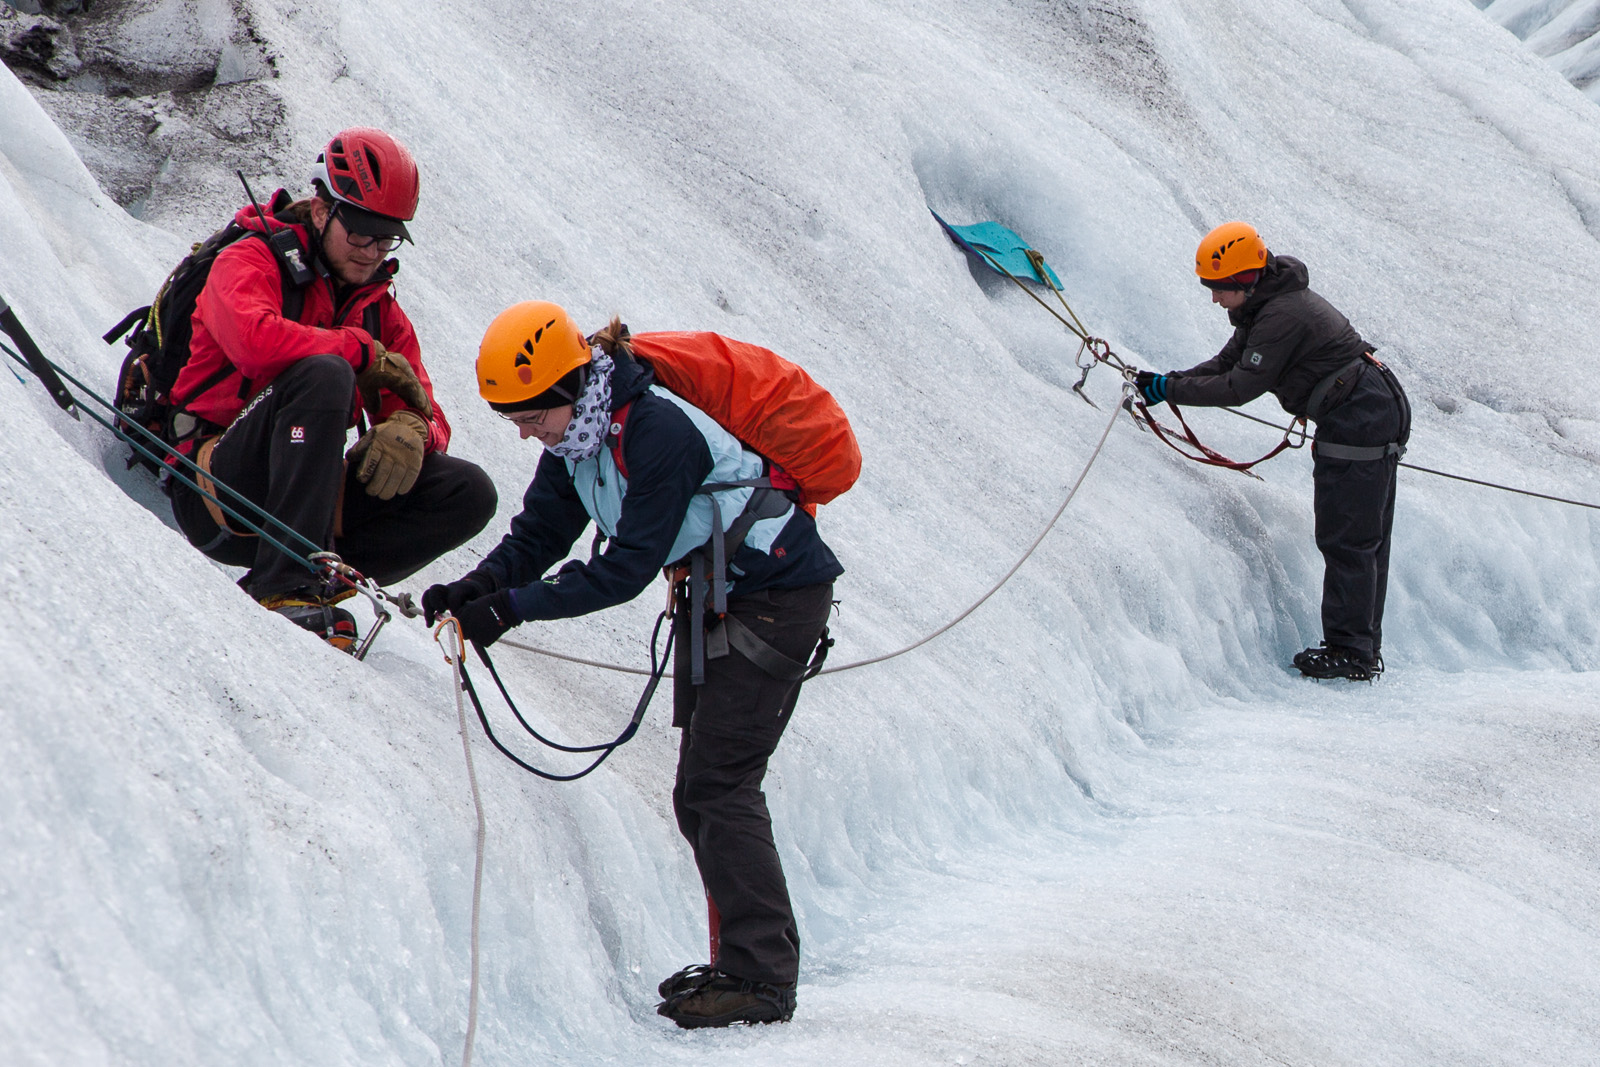 Going with the experts has a number of benefits. Not falling into a crevasse being one.